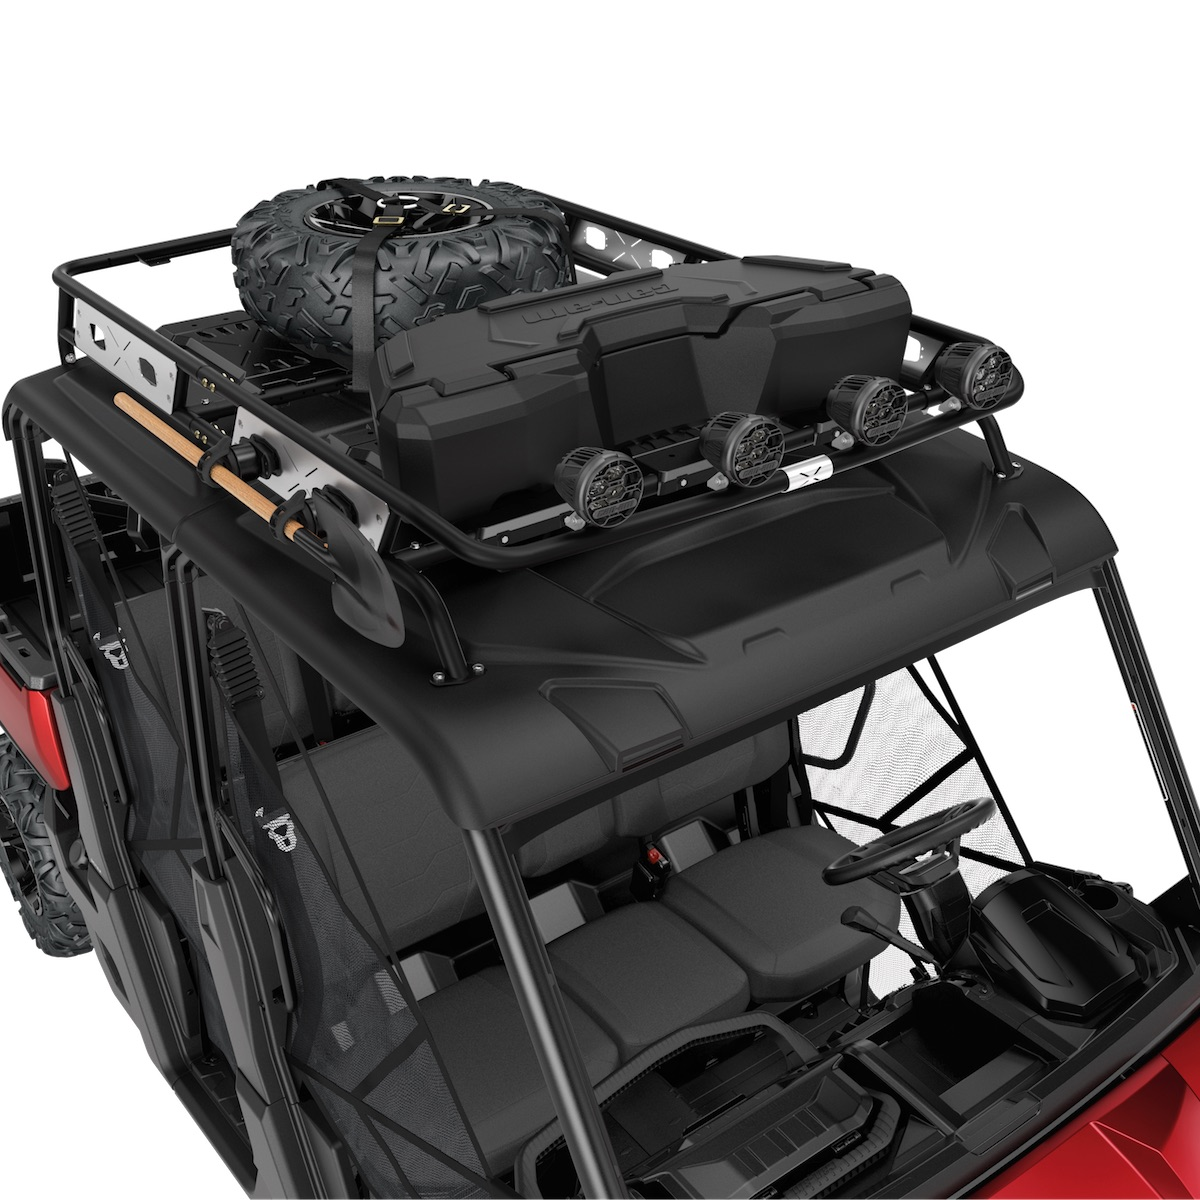 New Can Am Accessories Provide Convenient Solutions To